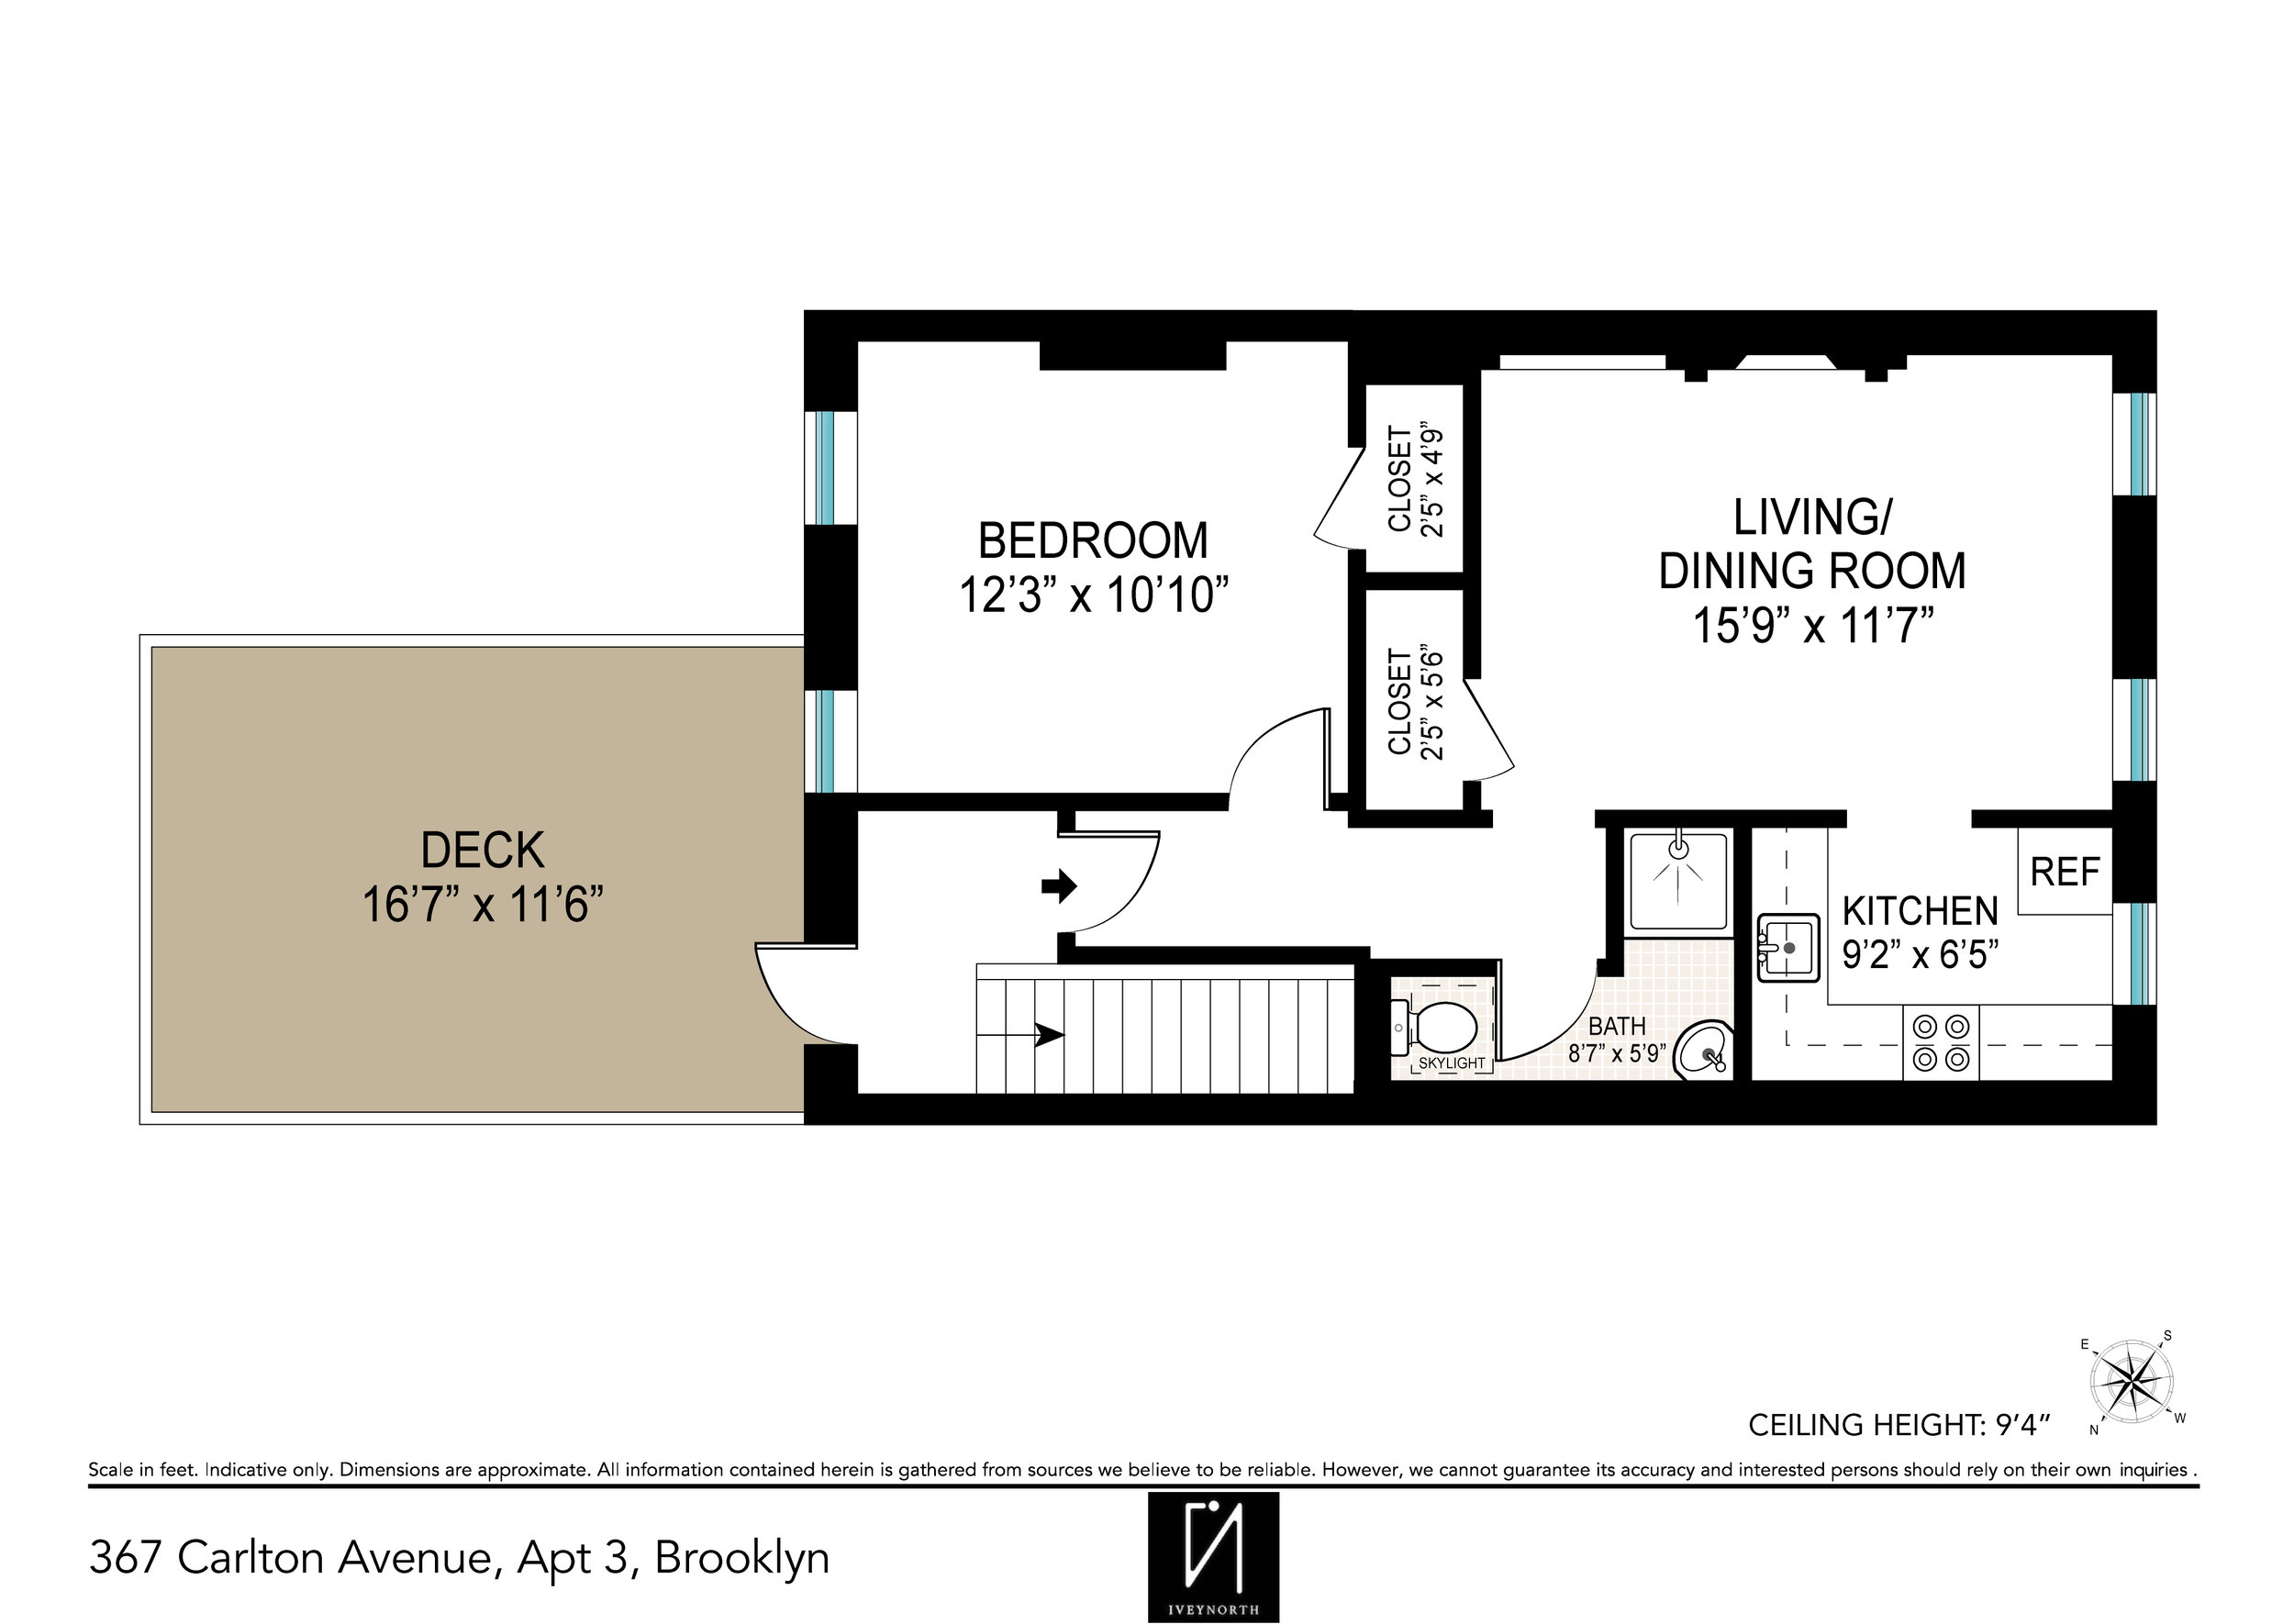 367 Carlton Avenue Floor Plan Ivey North.jpg